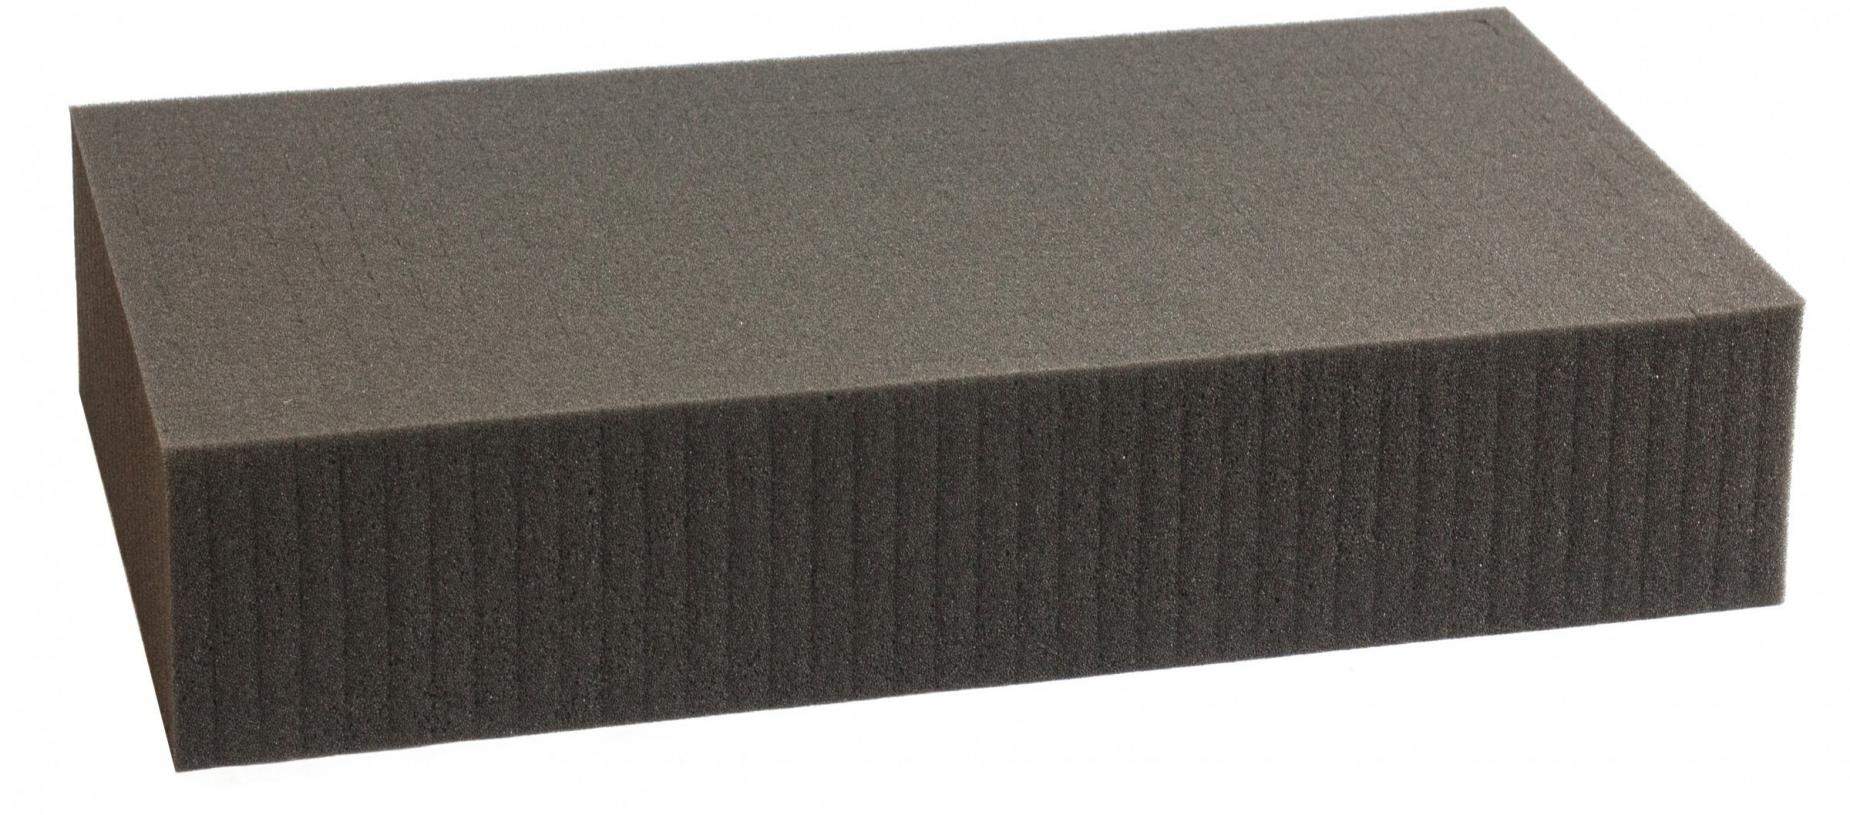 850 mm x 450 mm x 100 mm - Raster 15 mm - Pick and Pluck / Pre-Cubed foam tray